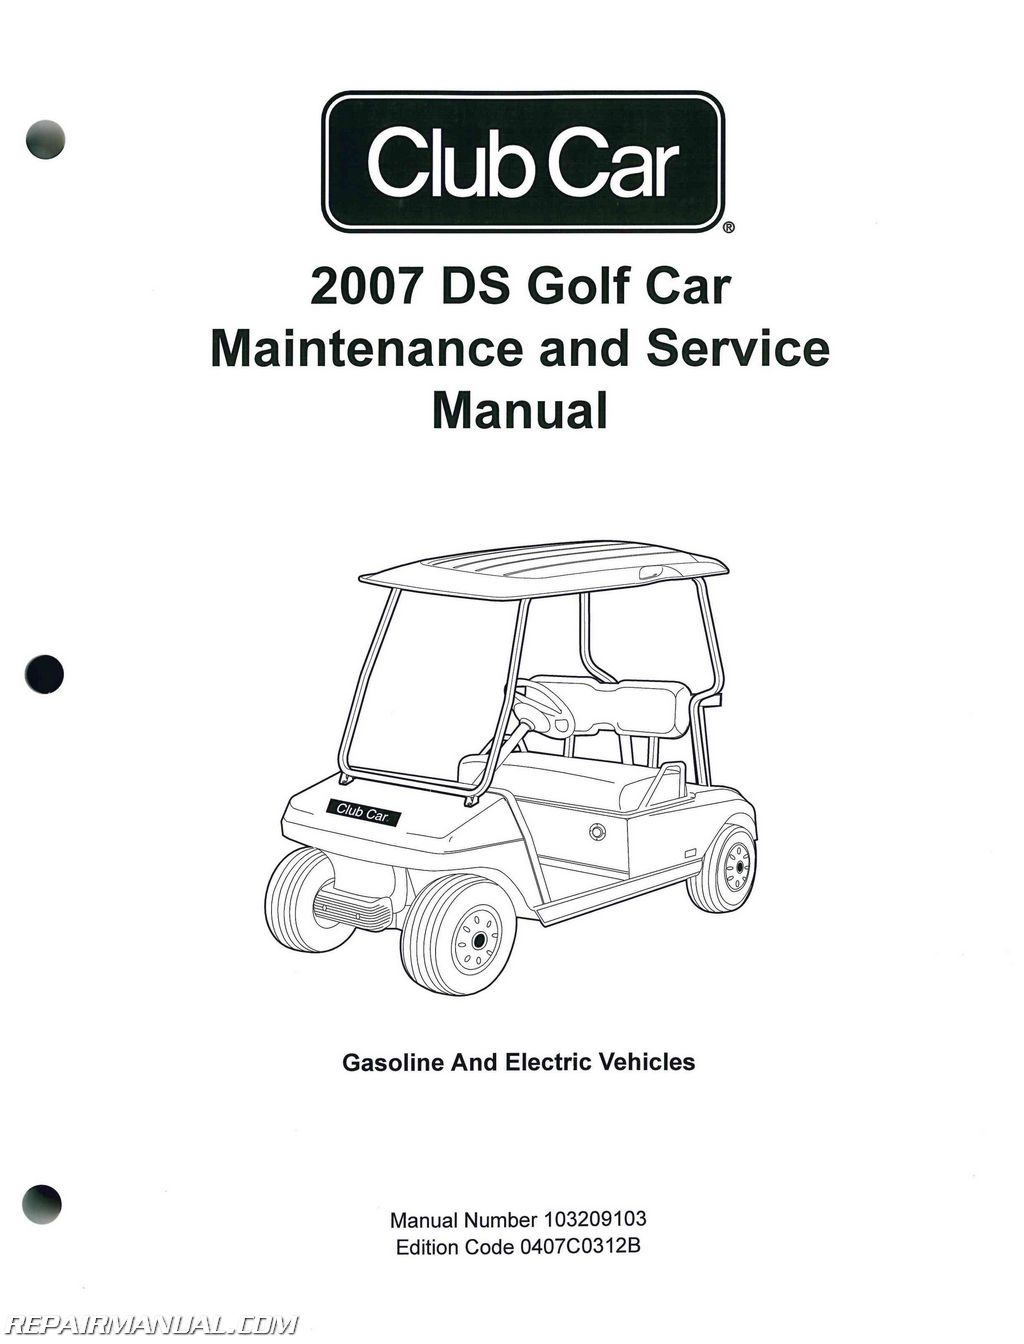 2007 Club Car DS Golf Car Gas And Electric Golf Cart Service Manual gas club car wiring diagrams readingrat net 2007 gas club car precedent wiring diagram at readyjetset.co